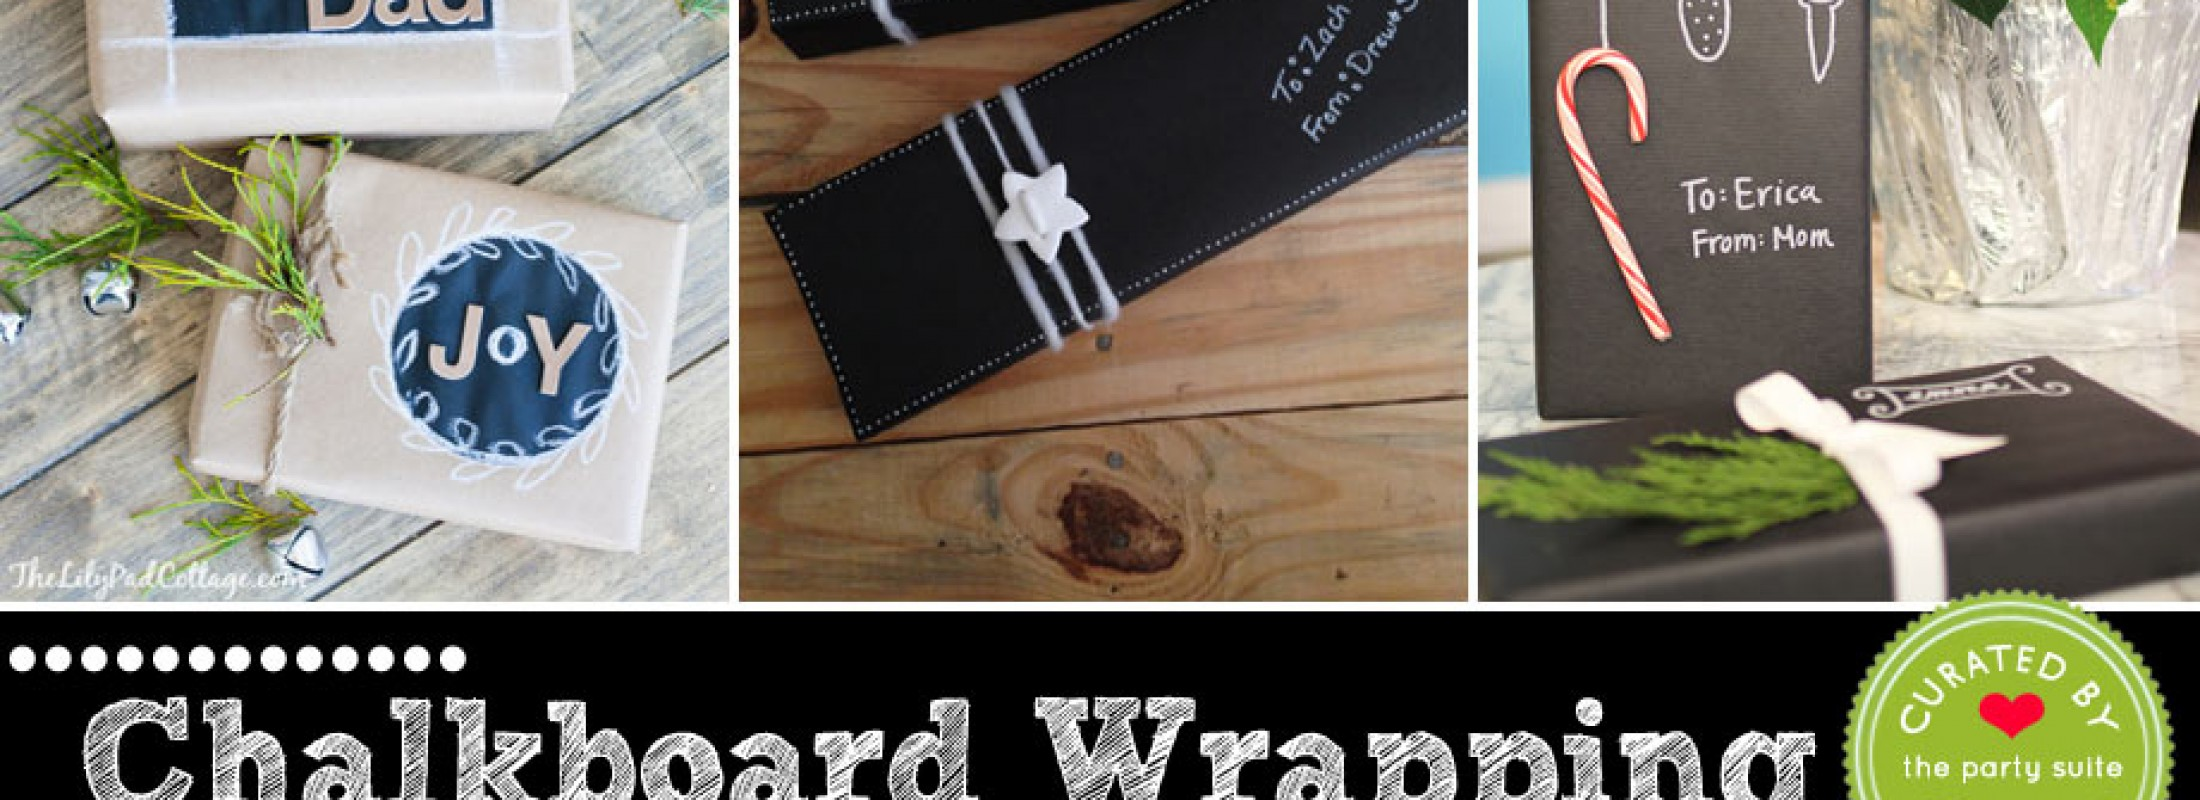 10 Chalkboard Style Gift Wrapping Ideas with Paper and Tags